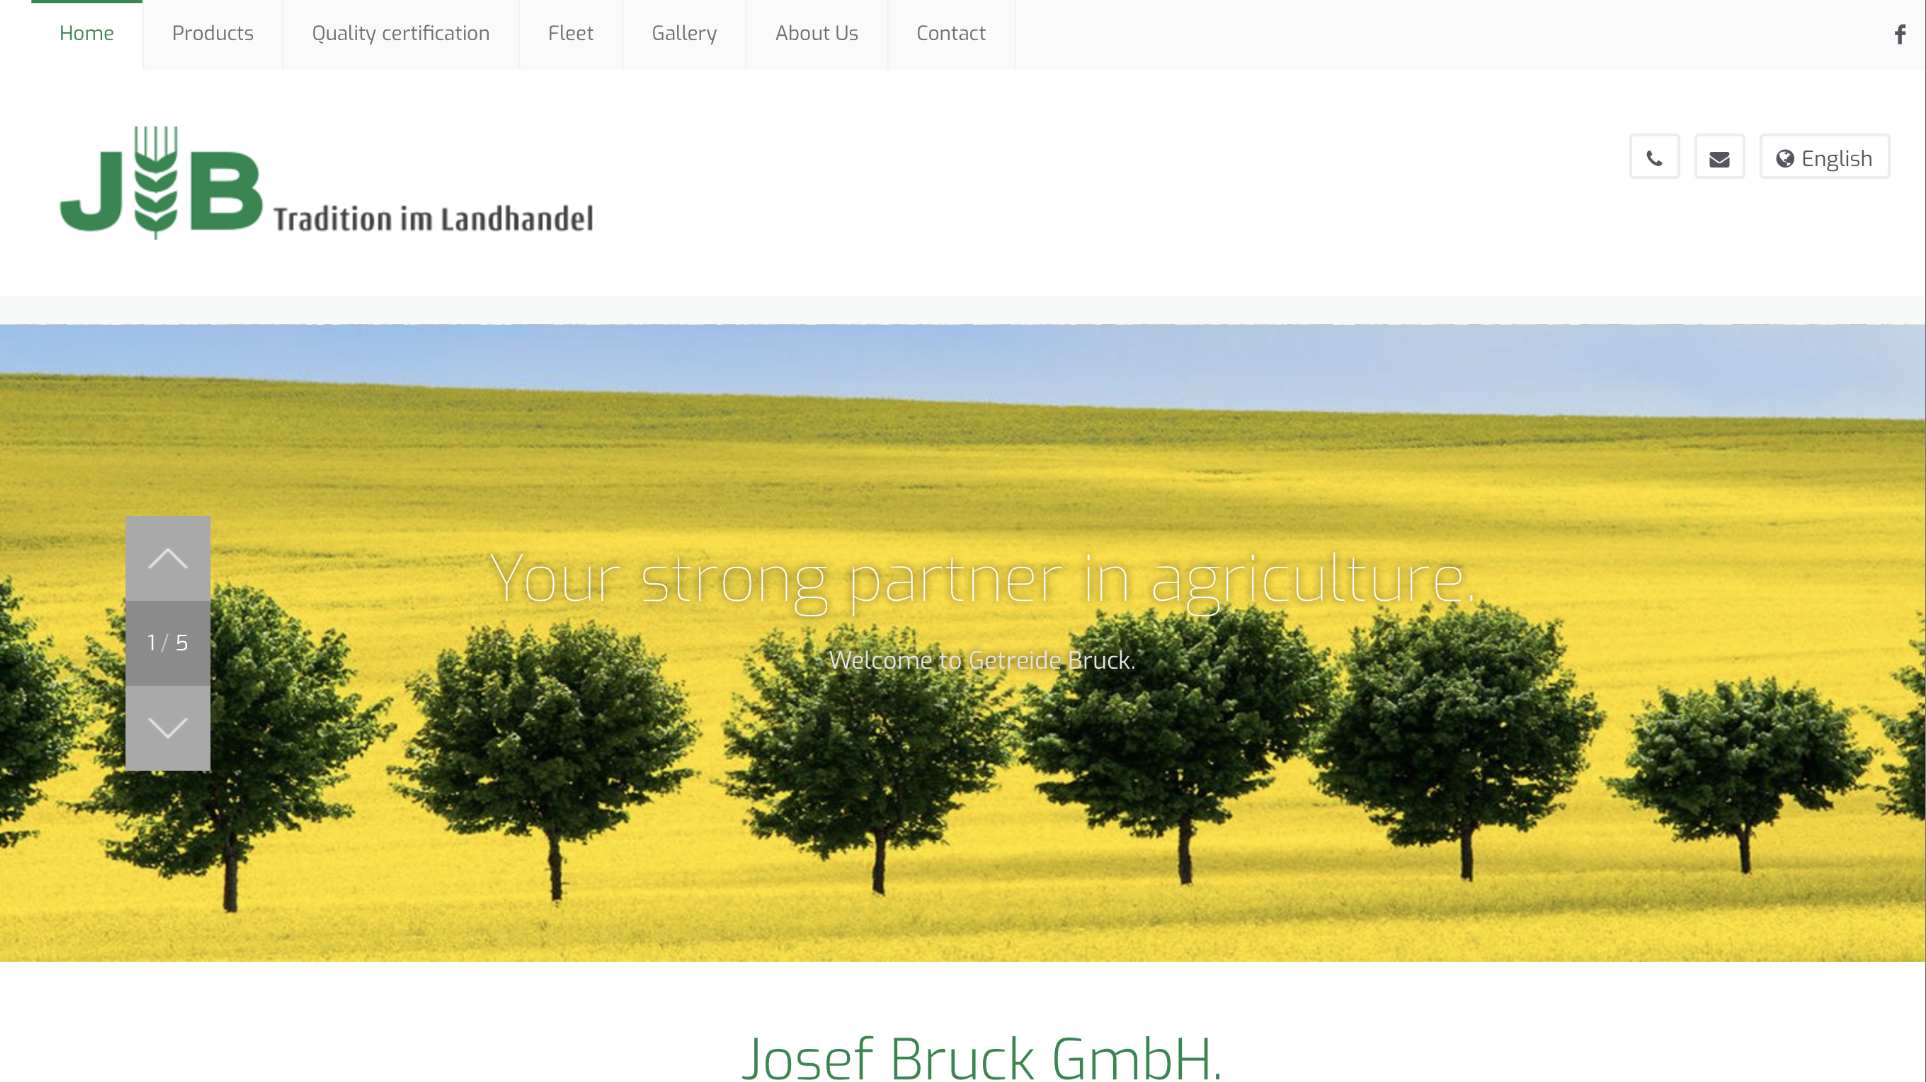 Josef Bruck GmbH Screenshot of the company website